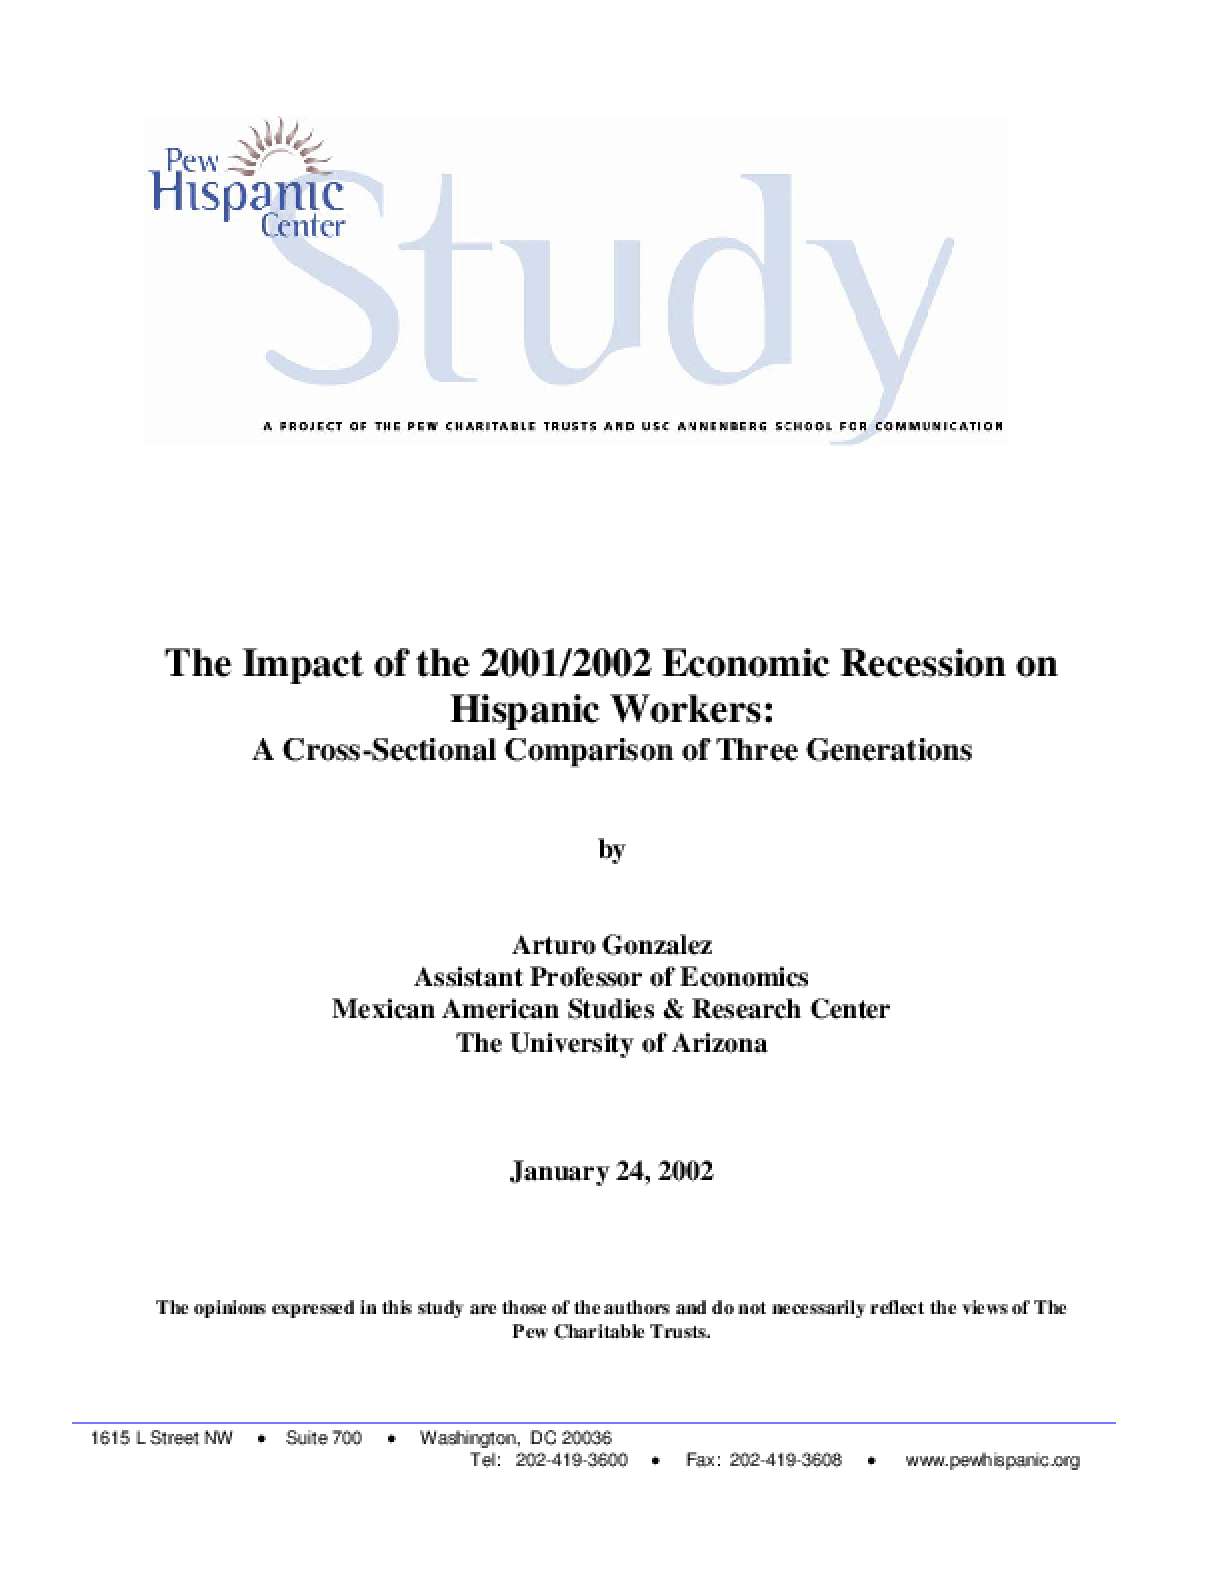 The Impact of the 2001/2002 Economic Recession on Hispanic Workers: A Cross-Sectional Comparison of Three Generations